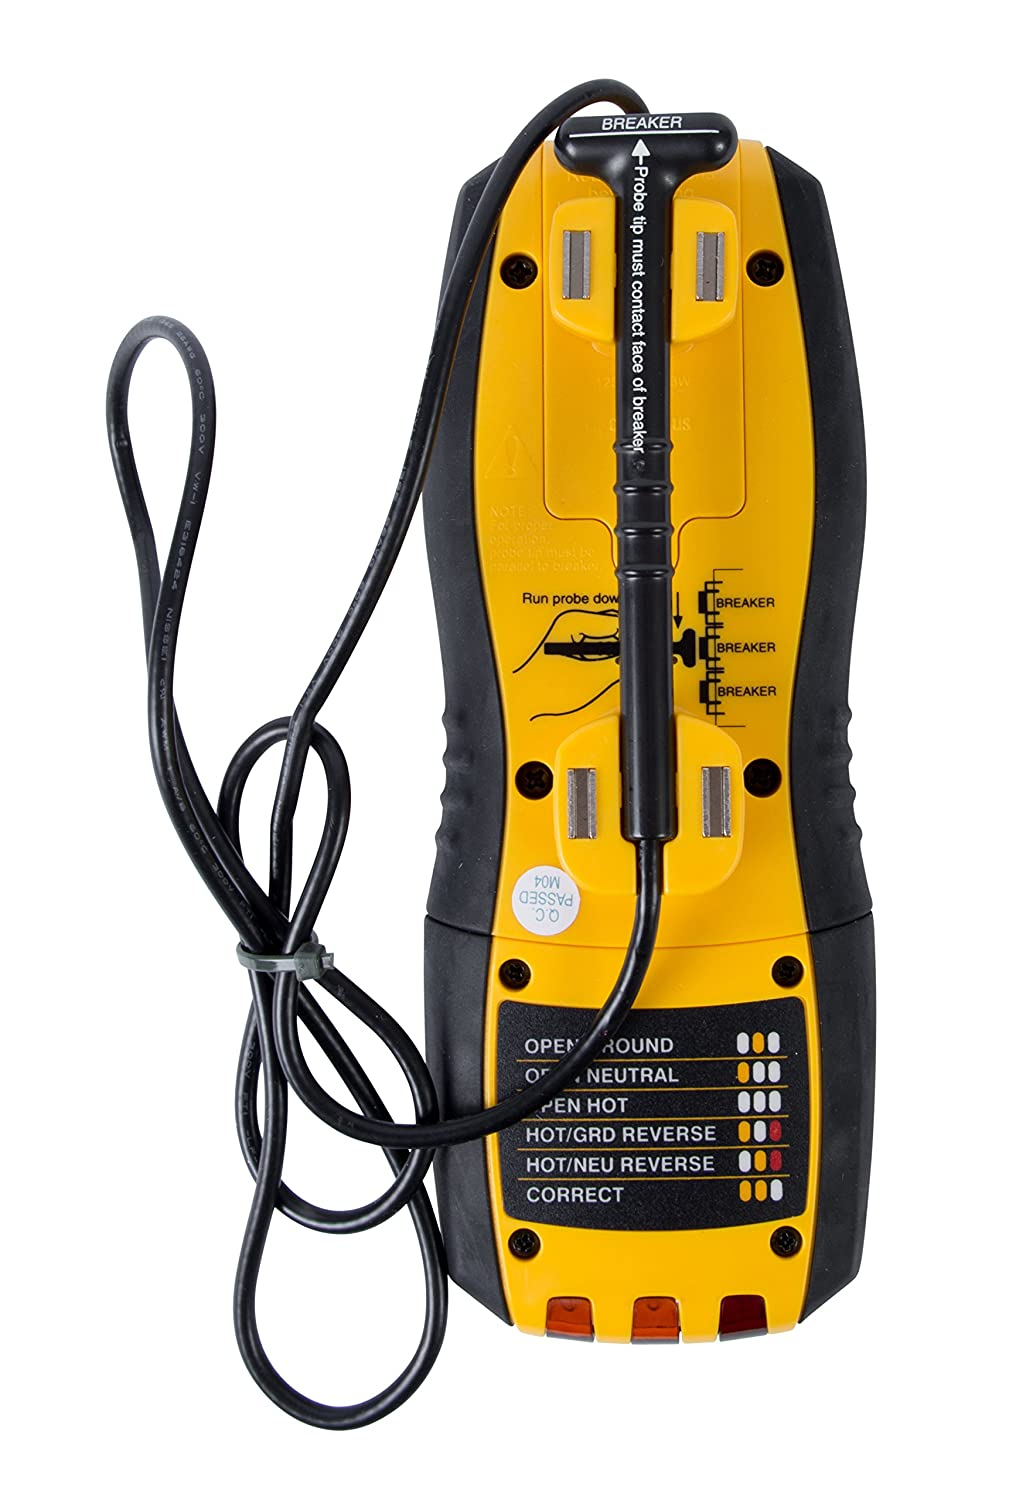 Sperry Instruments Cs61200 Circuit Breaker Finder Locator And Extech Ac Receptacle Tester Gfci